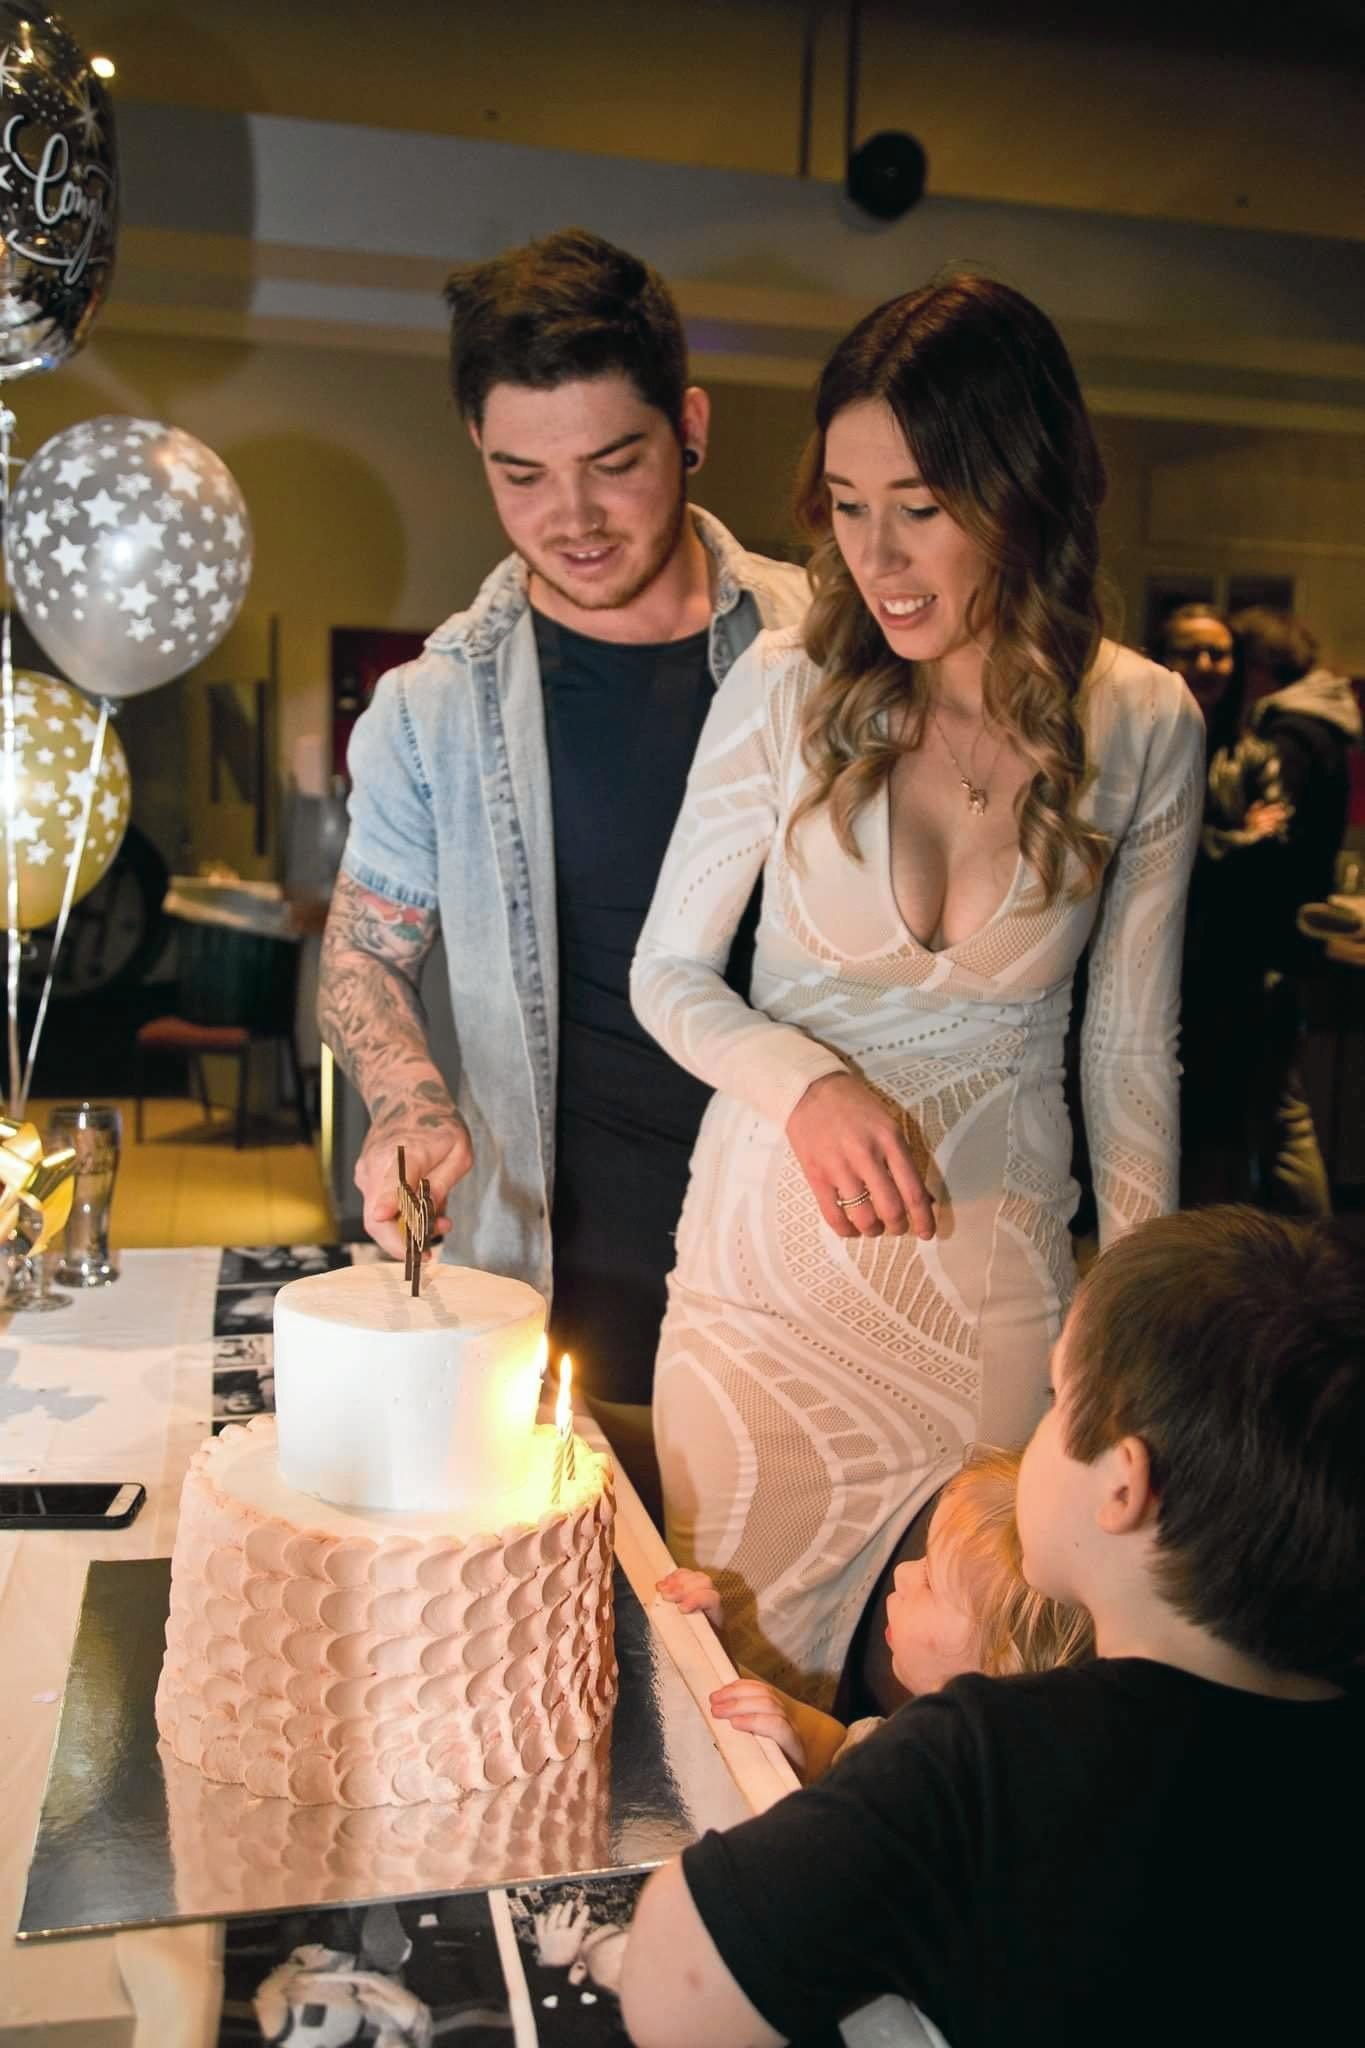 Tara Roberts and Josh Greig celebrated their engagement recently with 50 of their friends and family.